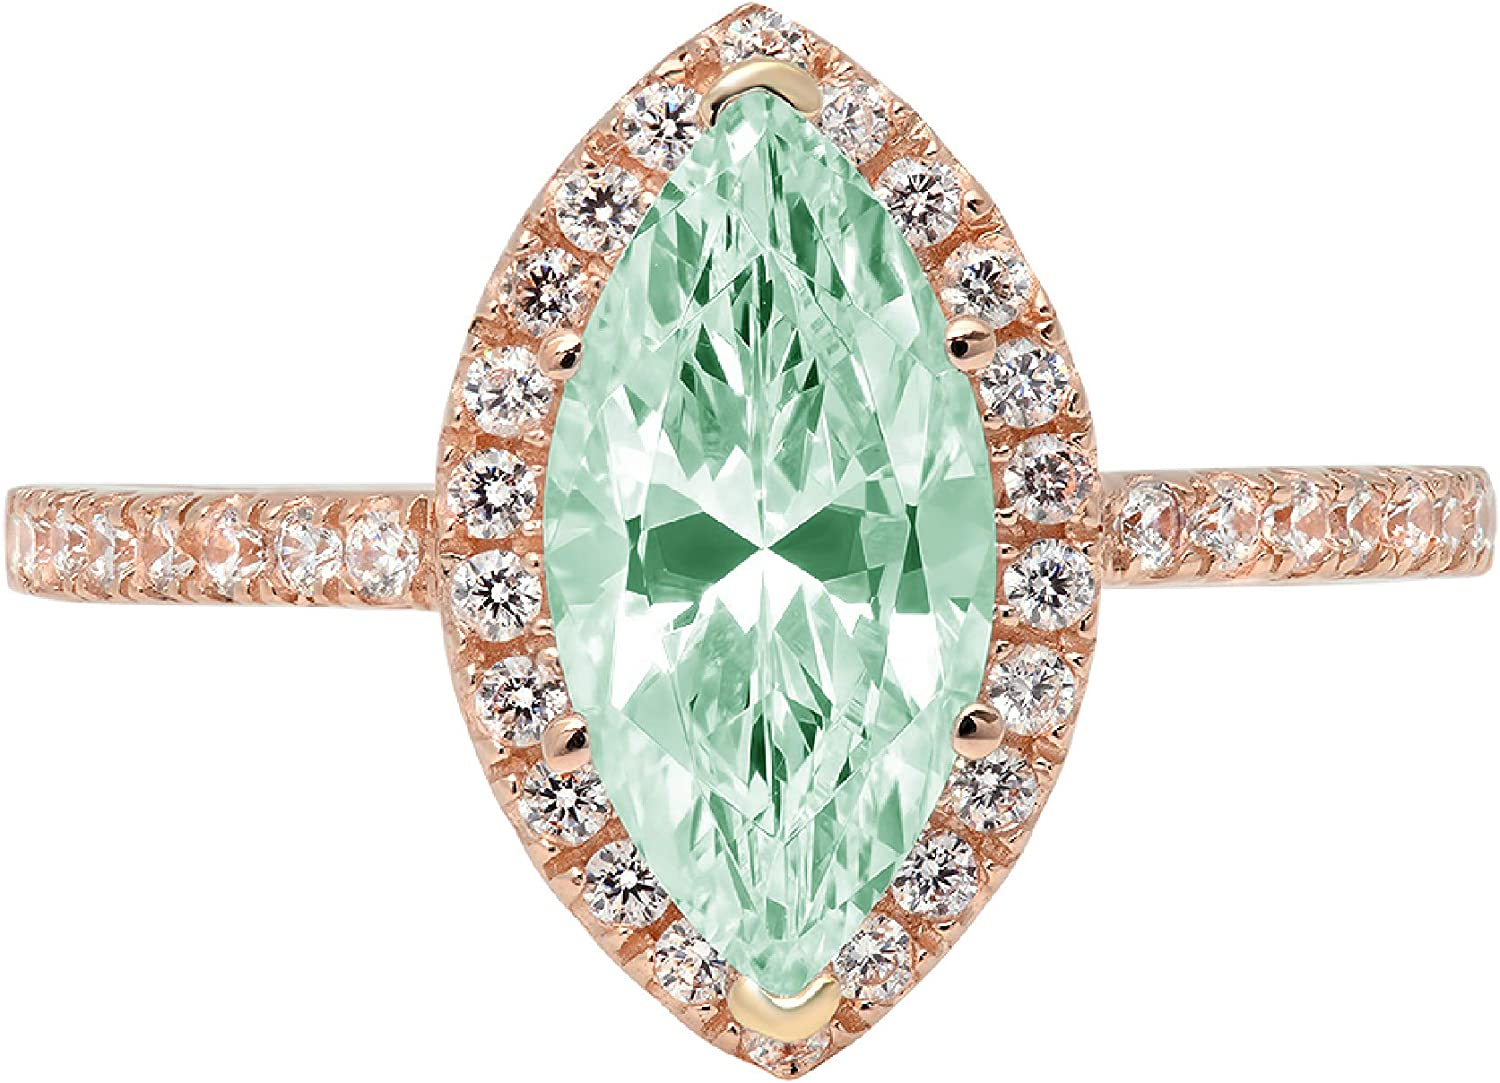 2.32ct Brilliant Marquise Cut Solitaire with Accent Halo Turquoise Green Ideal VVS1 Simulated Diamond CZ Engagement Promise Statement Anniversary Bridal Wedding Ring 14k Rose Gold